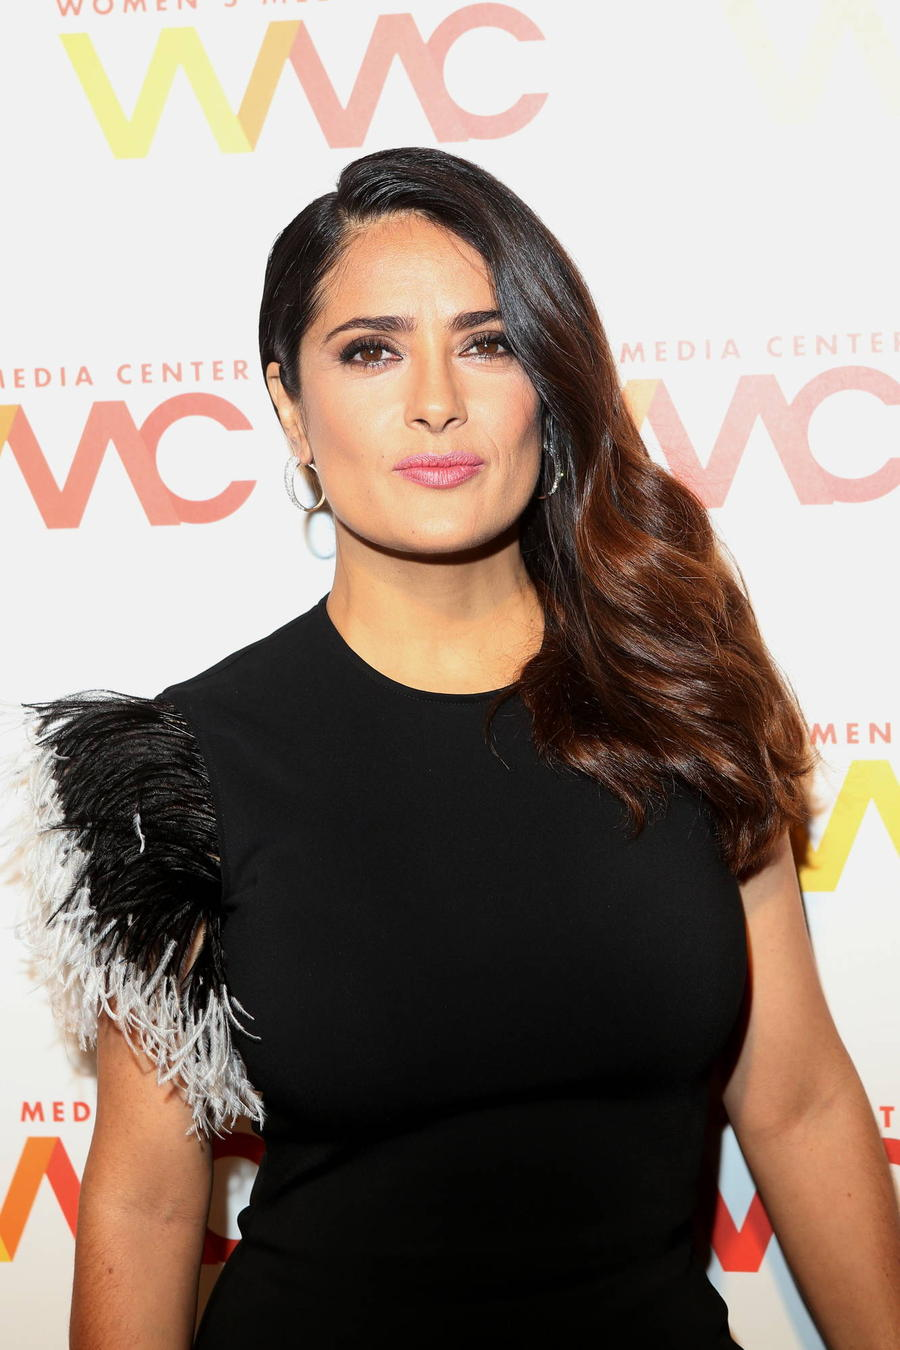 Salema hayek photo 48